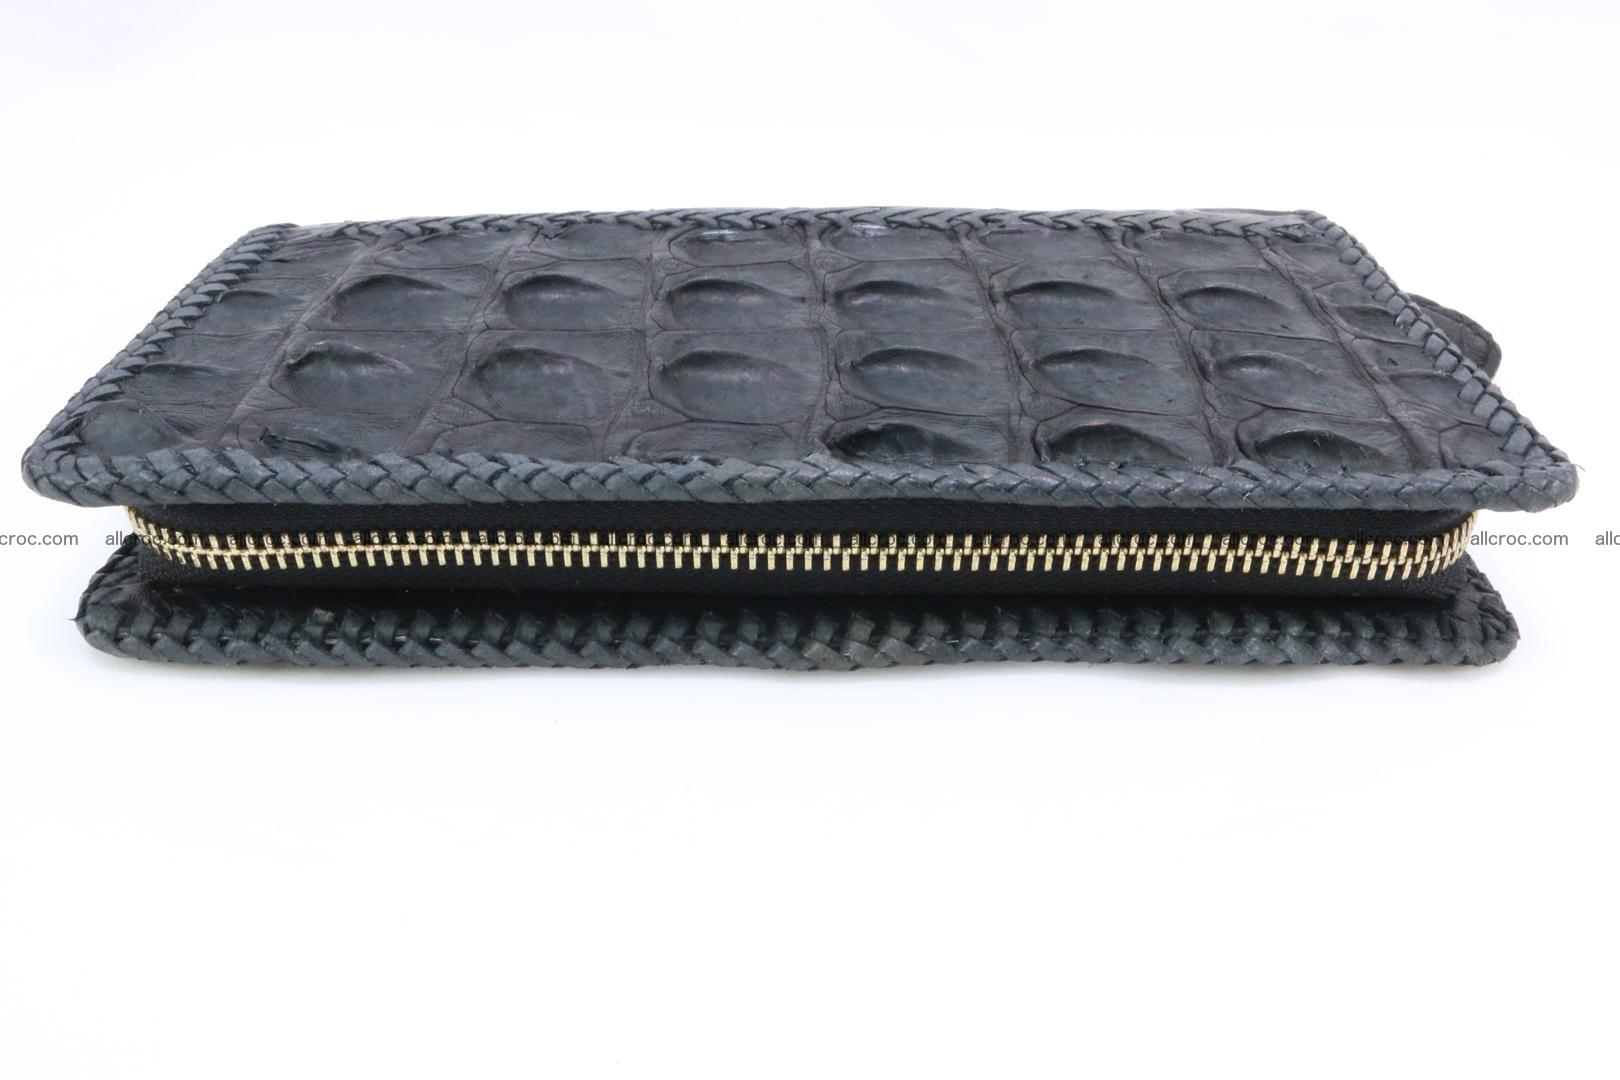 Genuine crocodile hornback wallet with zip 099 Foto 6